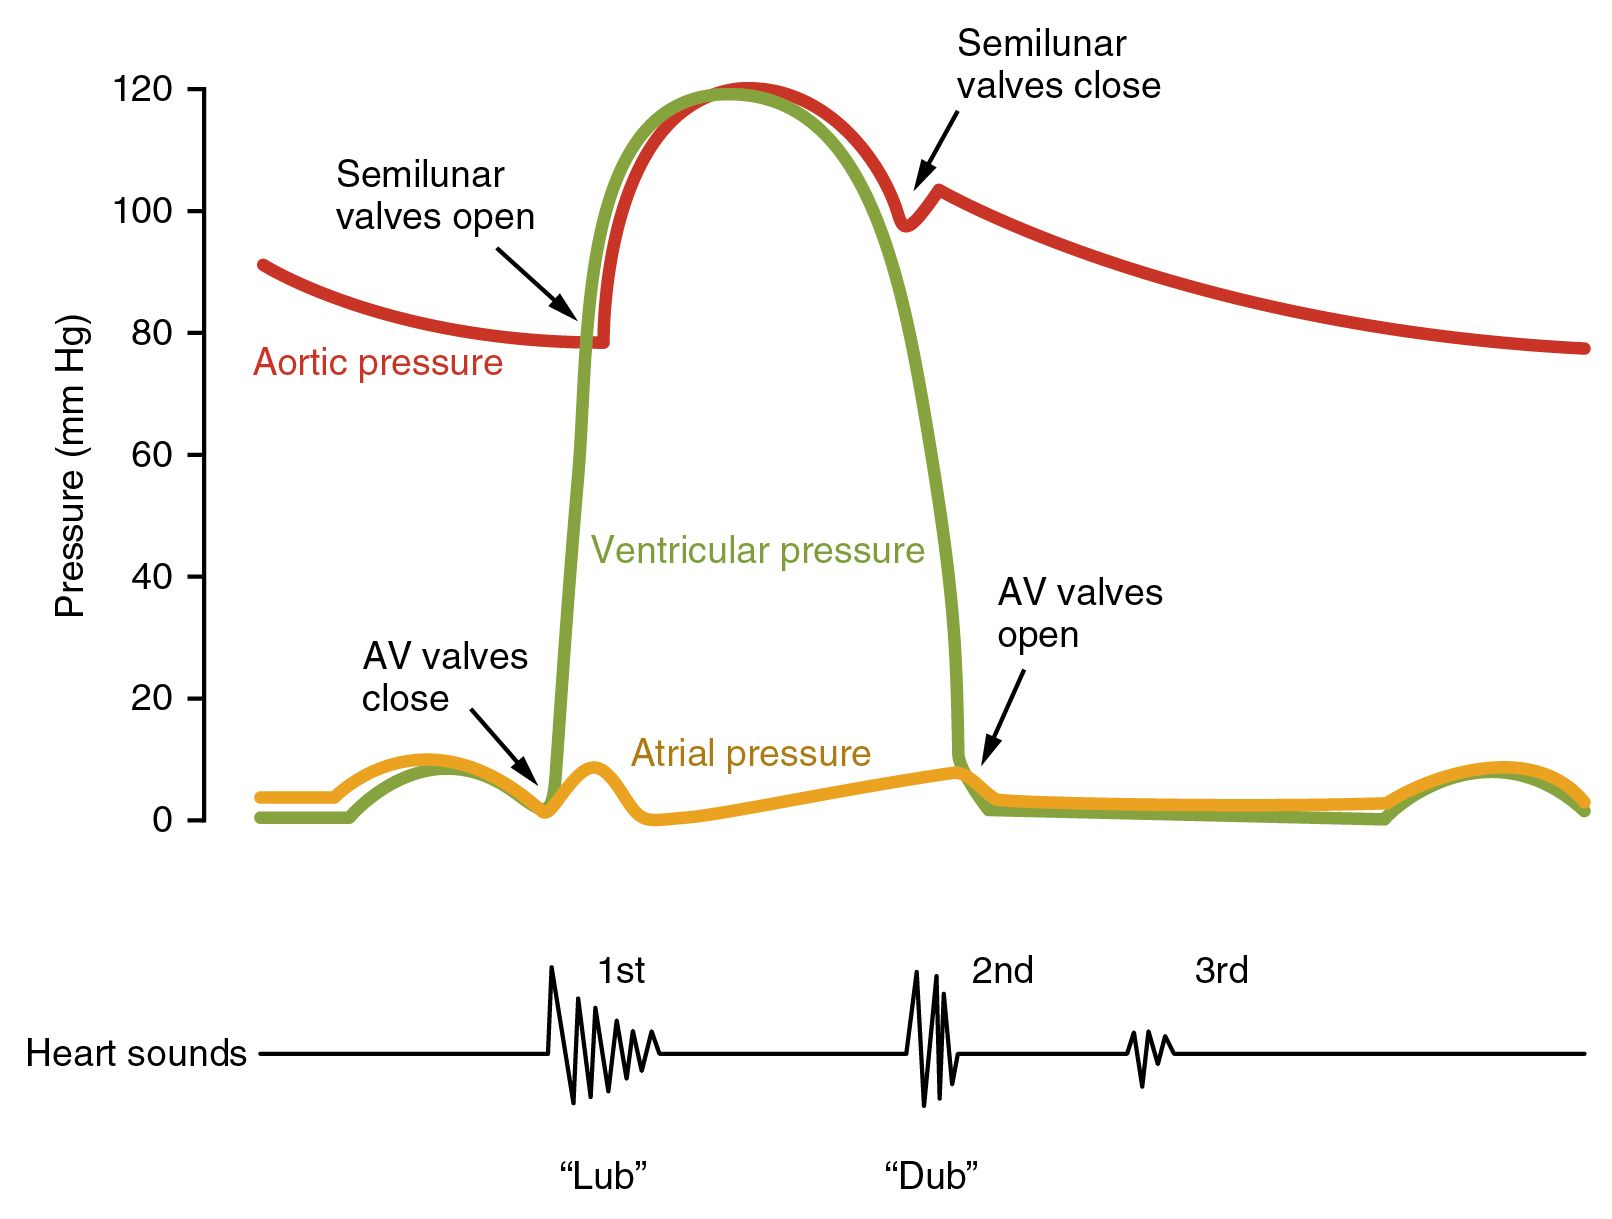 hight resolution of this image shows a graph of the blood pressure with the different stages labeled under the graph a line shows the different sounds made by the beating